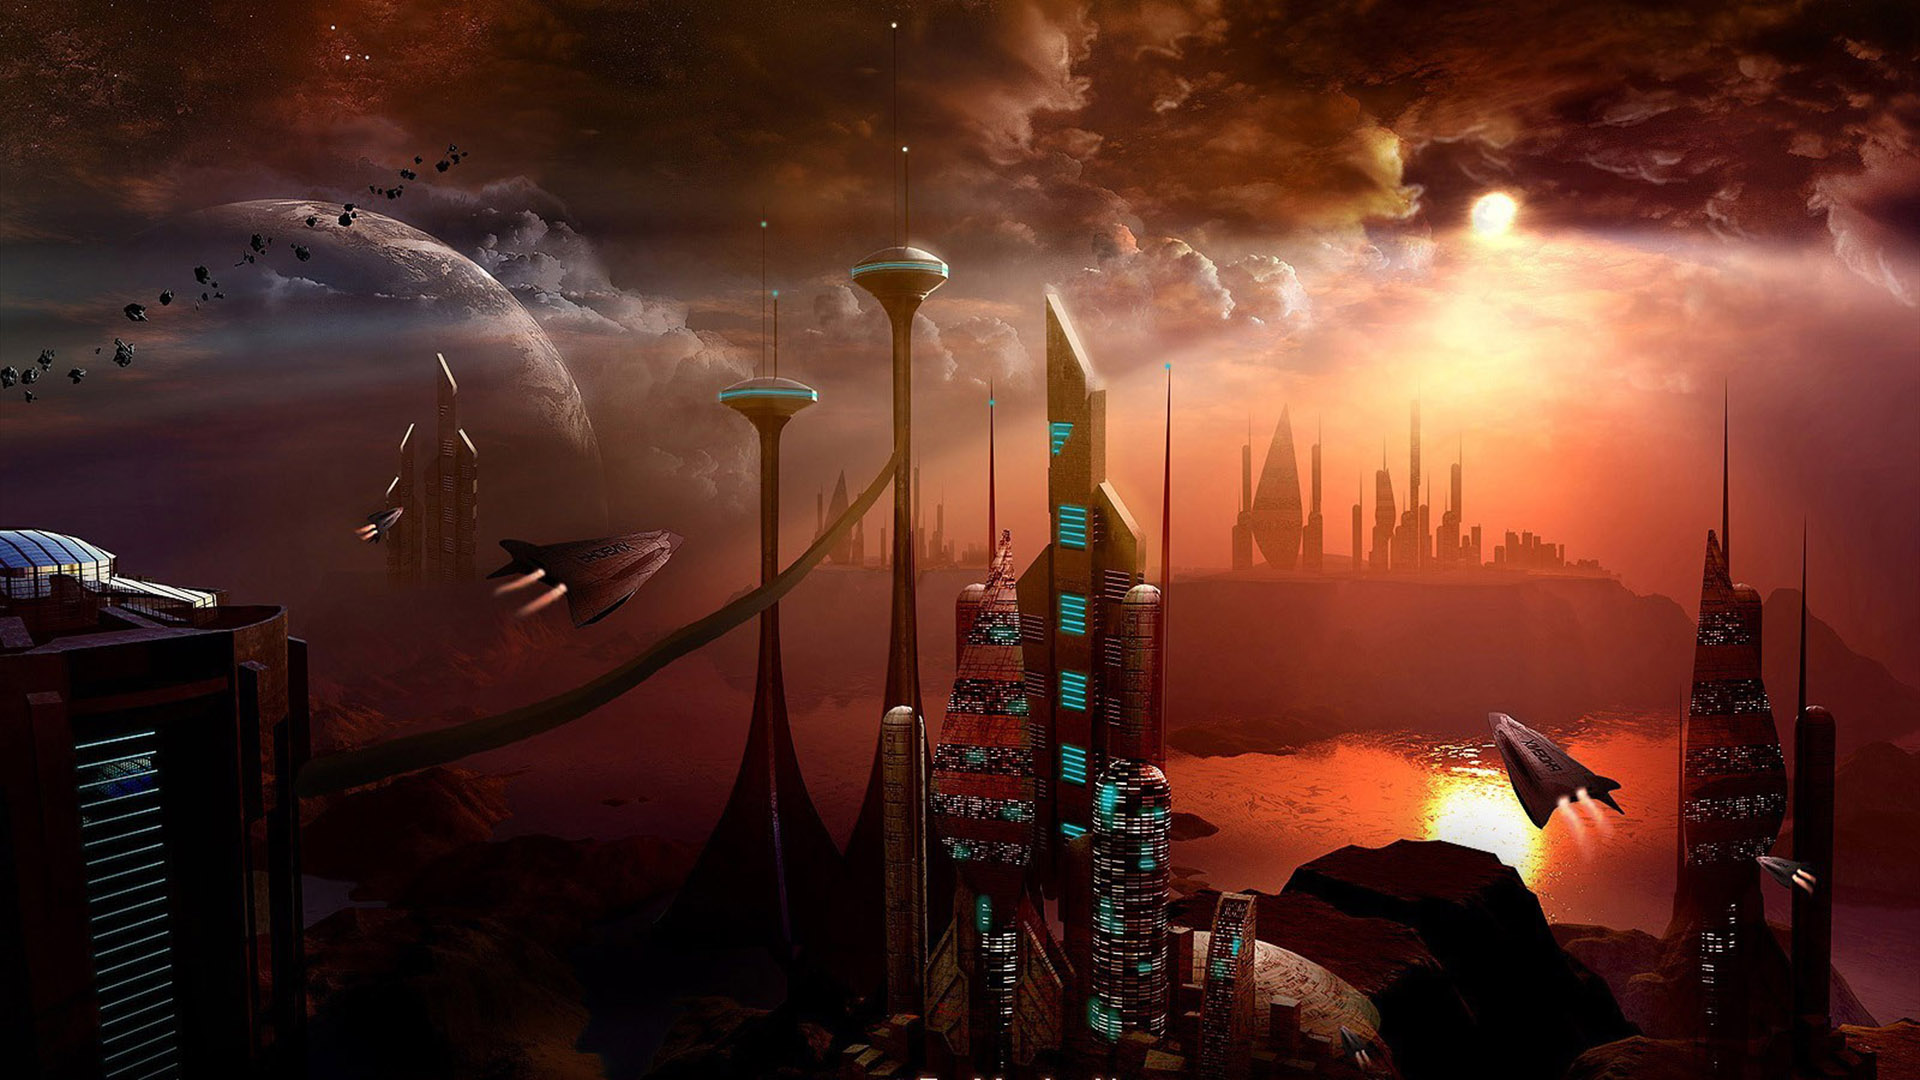 Science-Fiction - Großstadt  Red UFO Science-Fiction Wallpaper